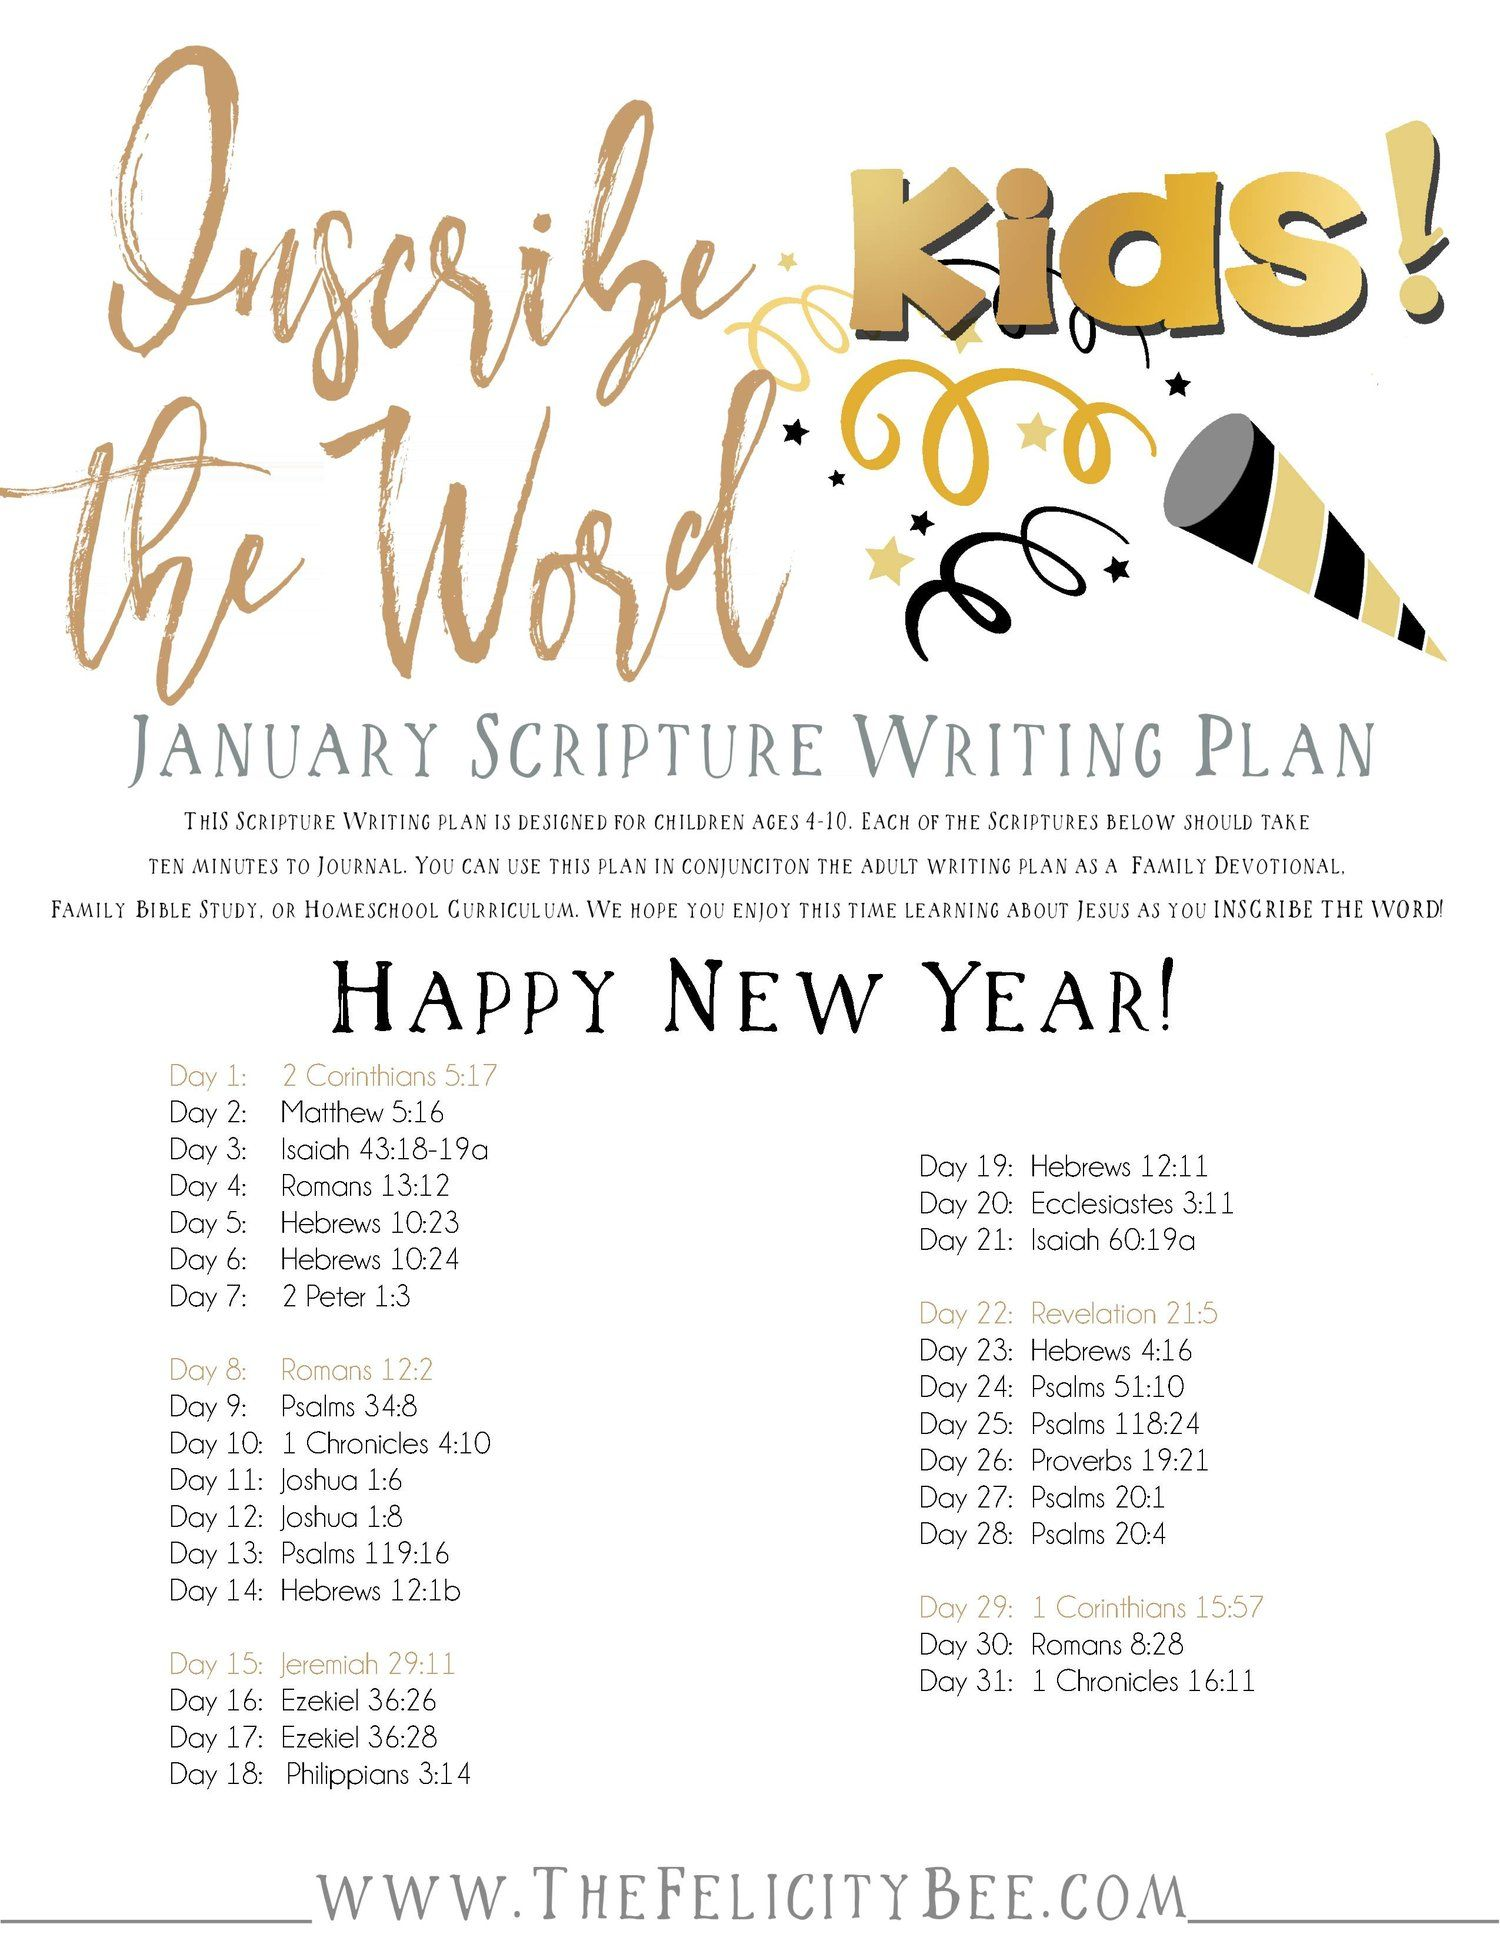 Inscribe the Word KIDS! . . . January Scripture Writing Plan ...